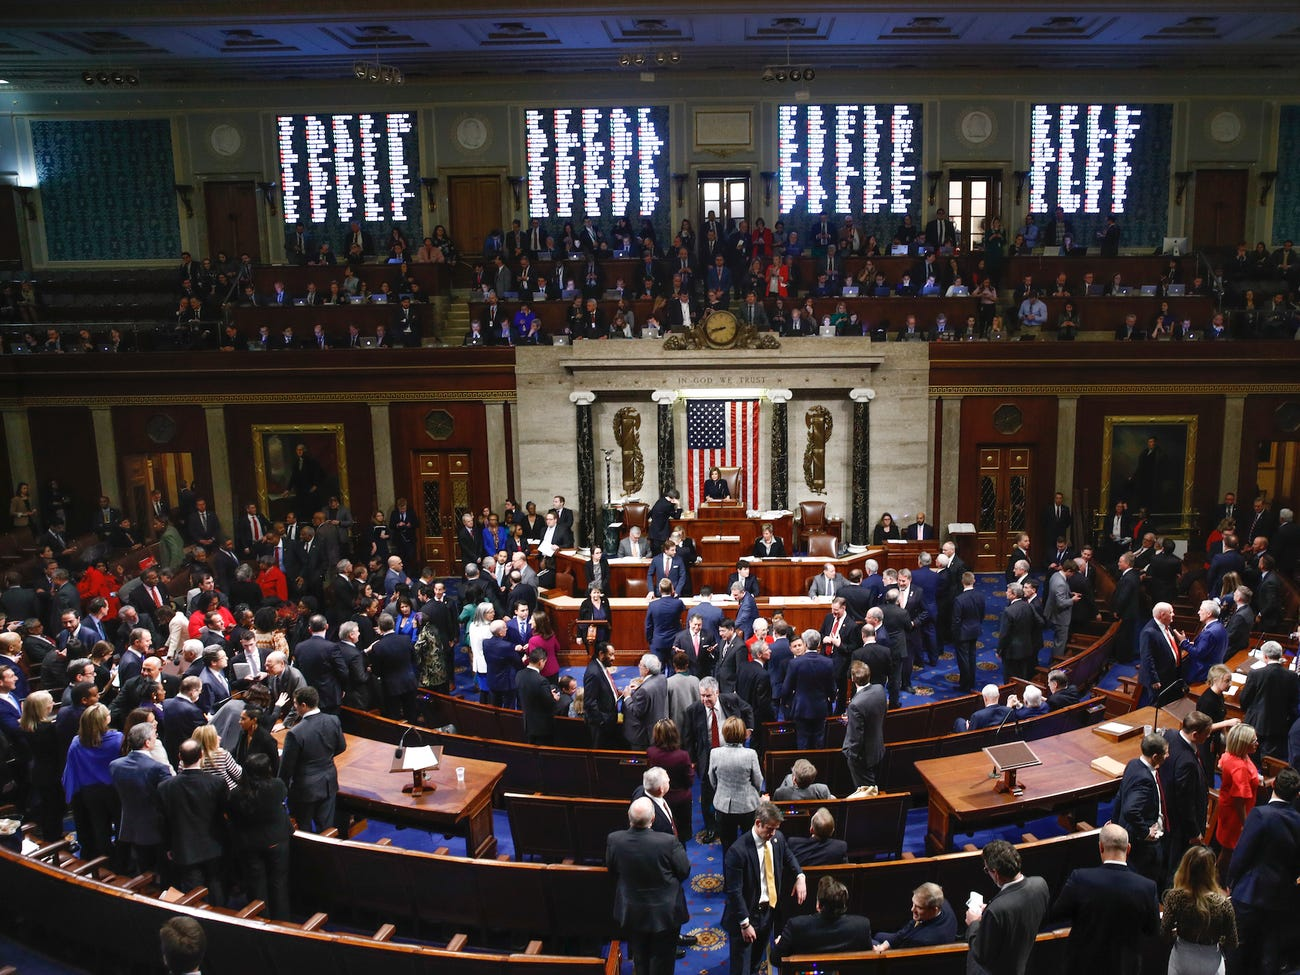 The House of Representatives impeached President Trump last Wednesday, December 18, 2019 on two accounts: Abuse of Power and Obstruction of Congress.